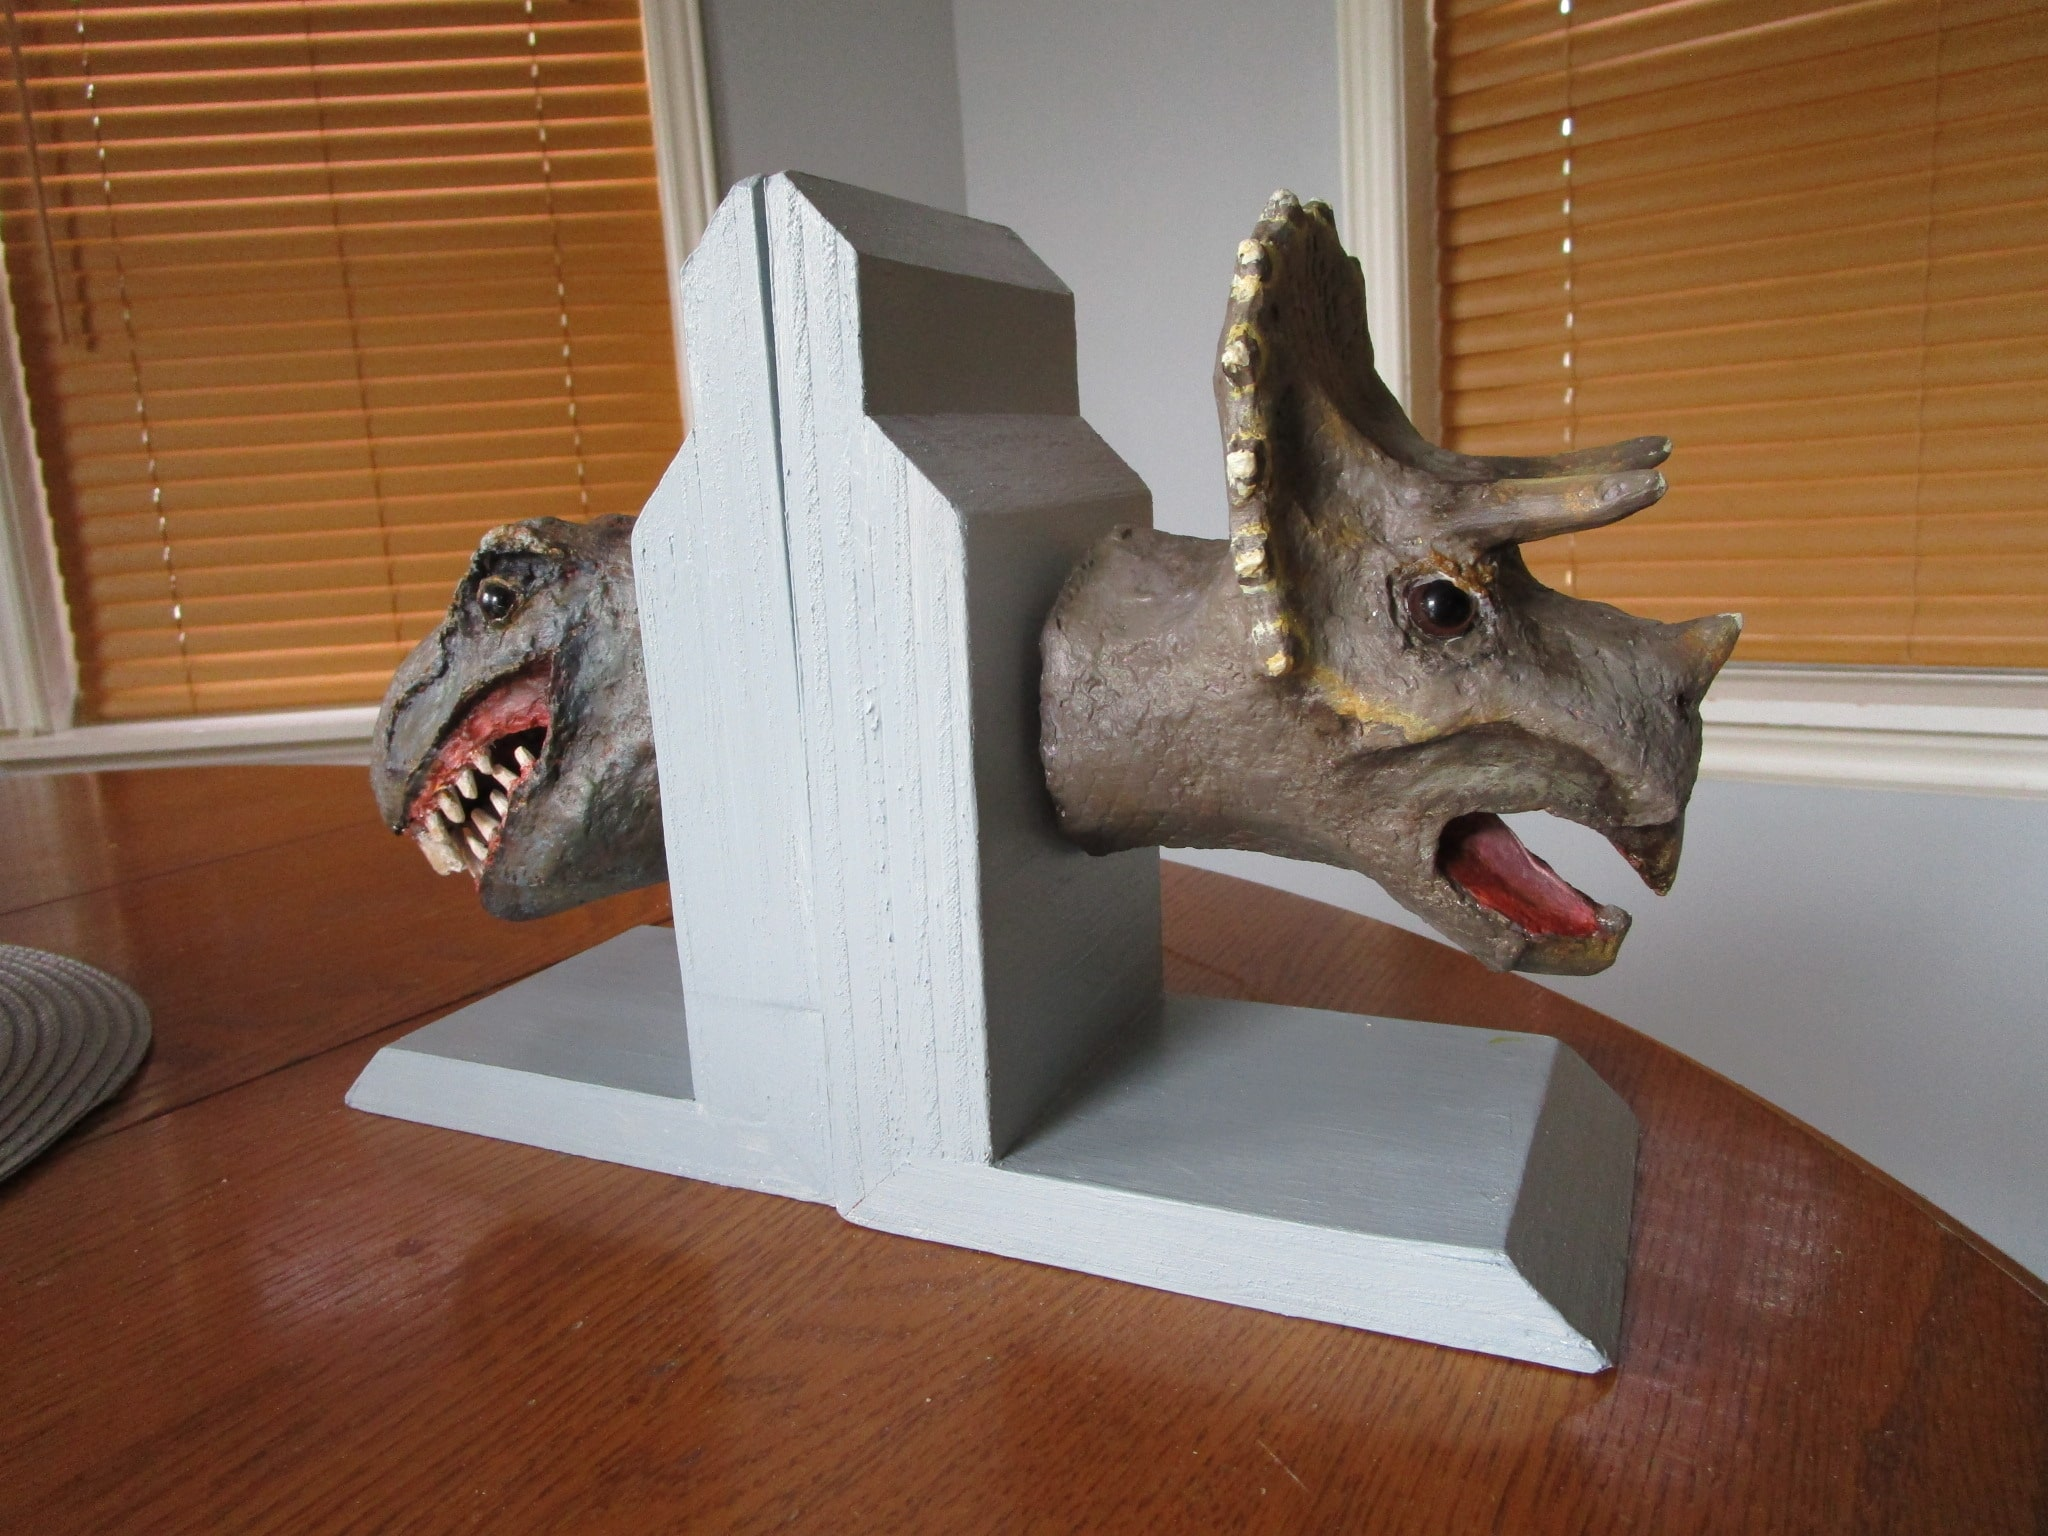 Dinosaur bookends made with paper mache clay